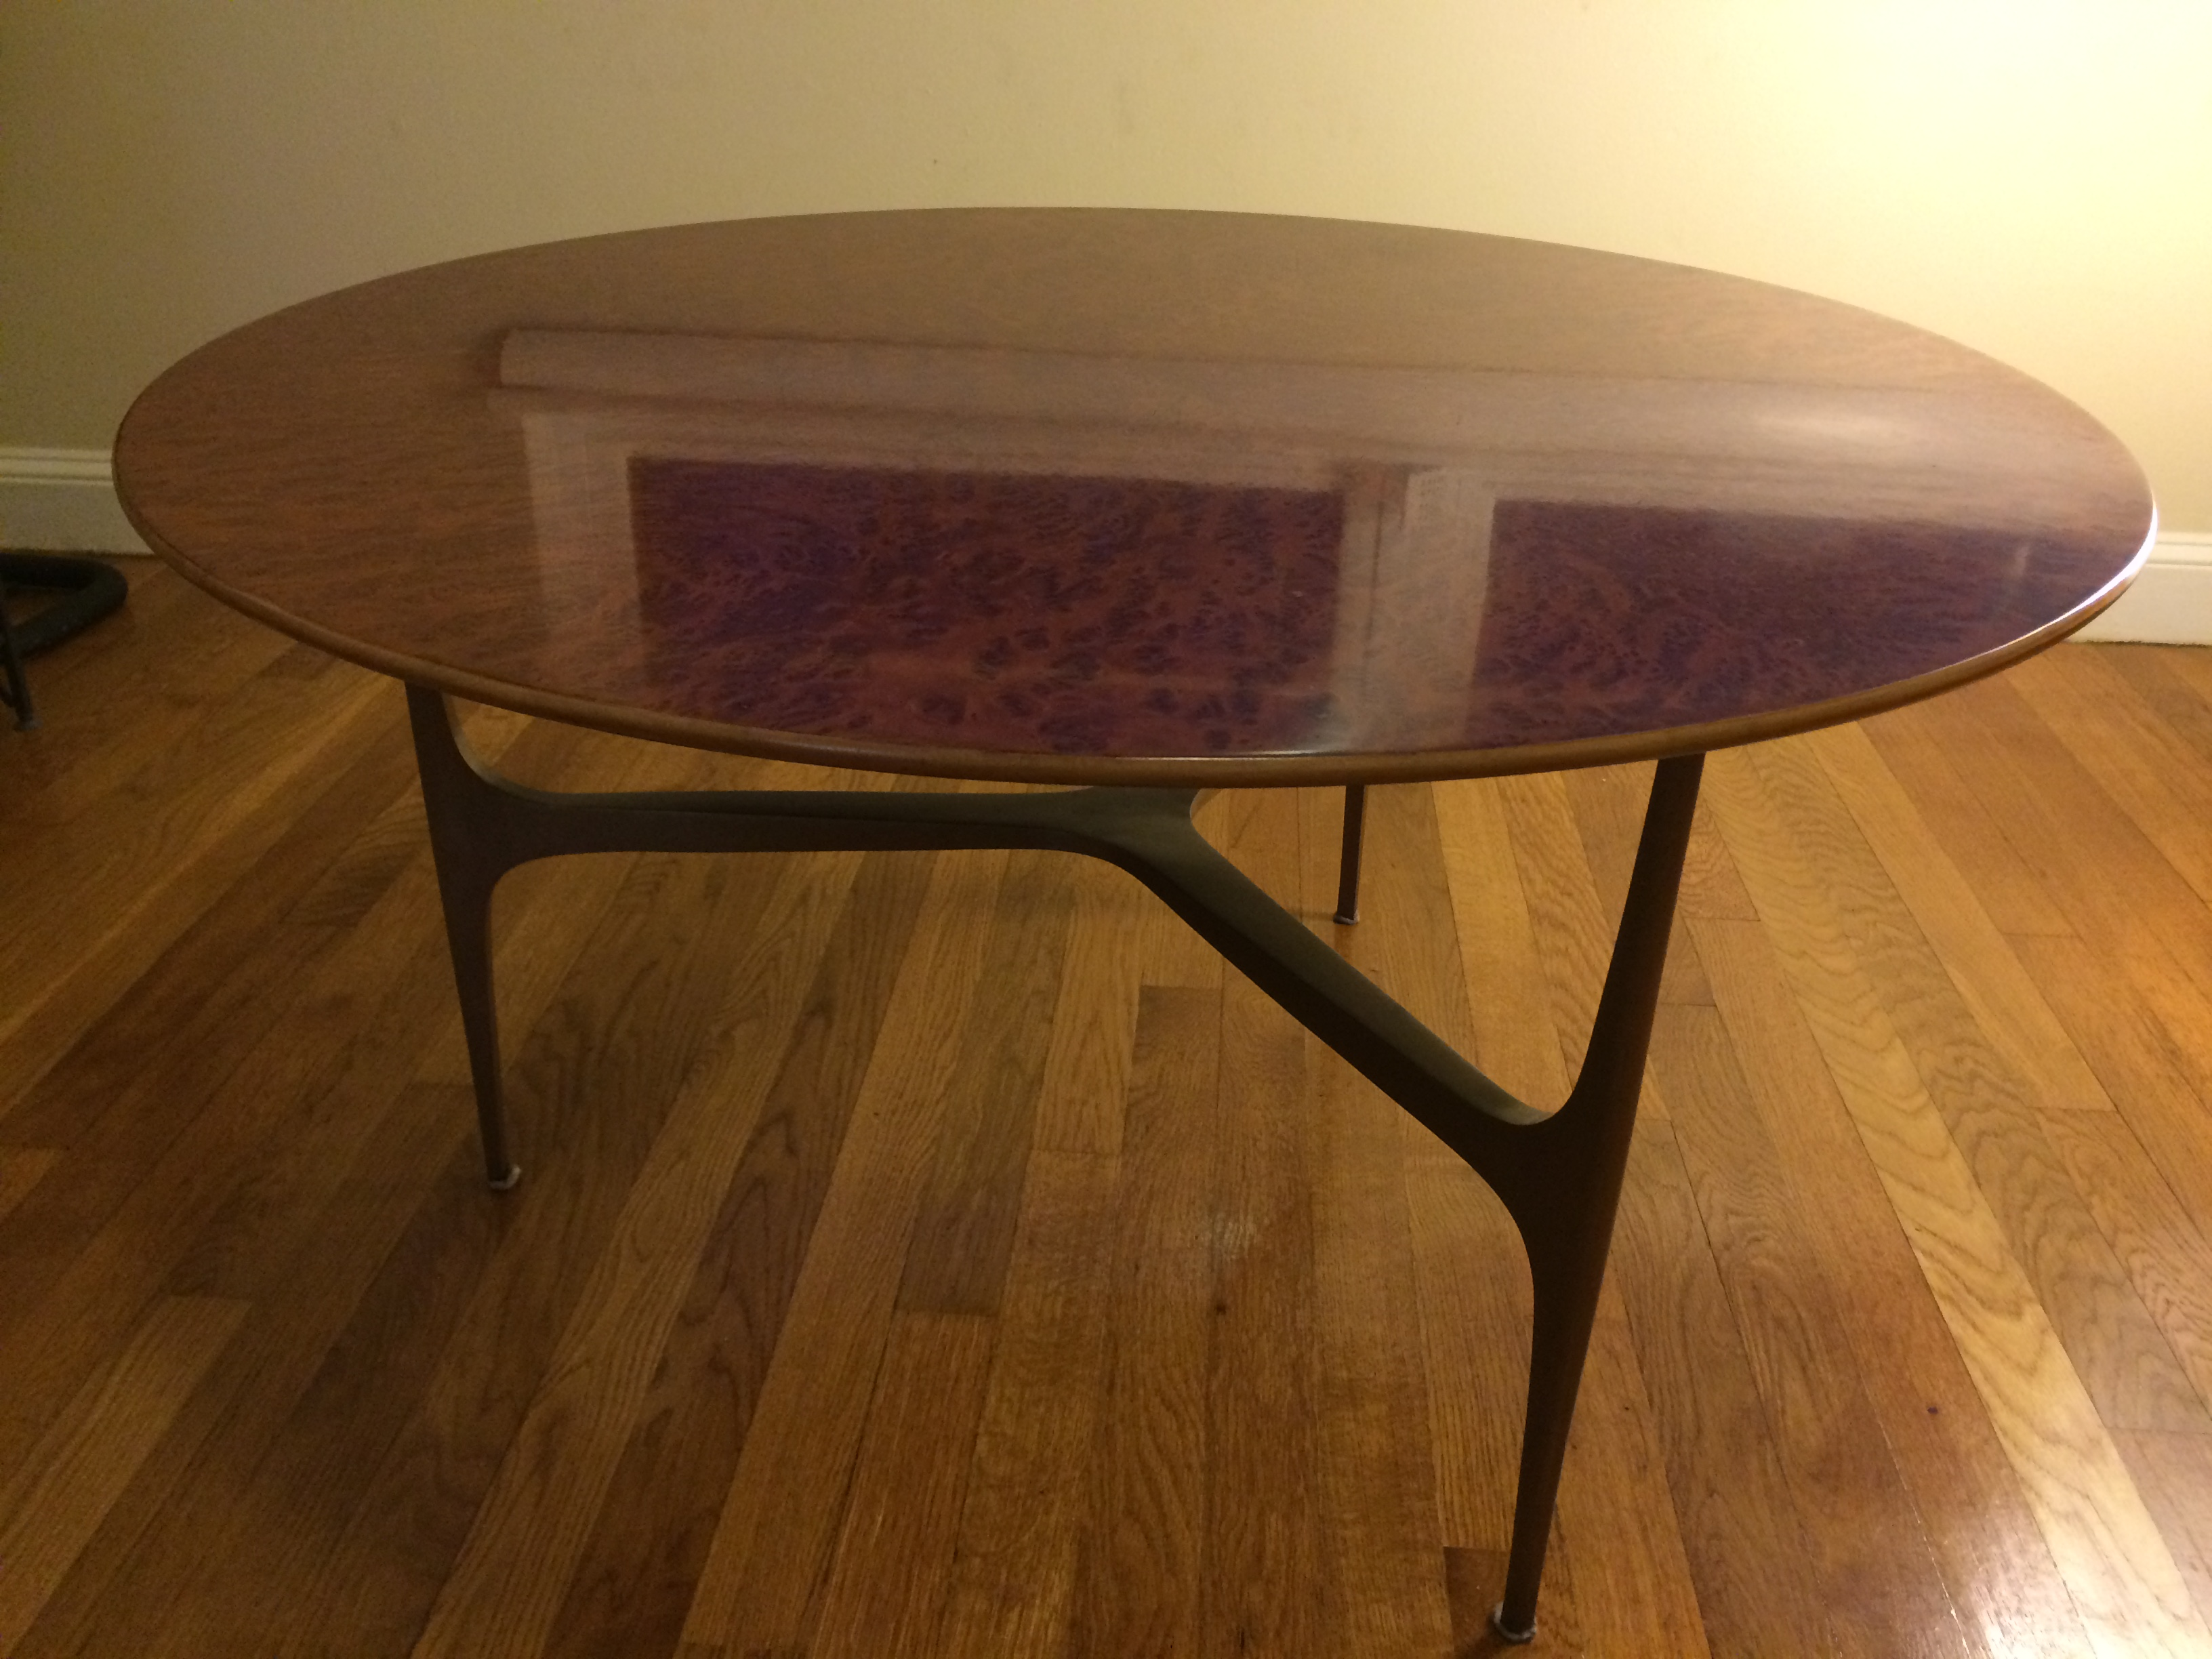 Keno brothers tables